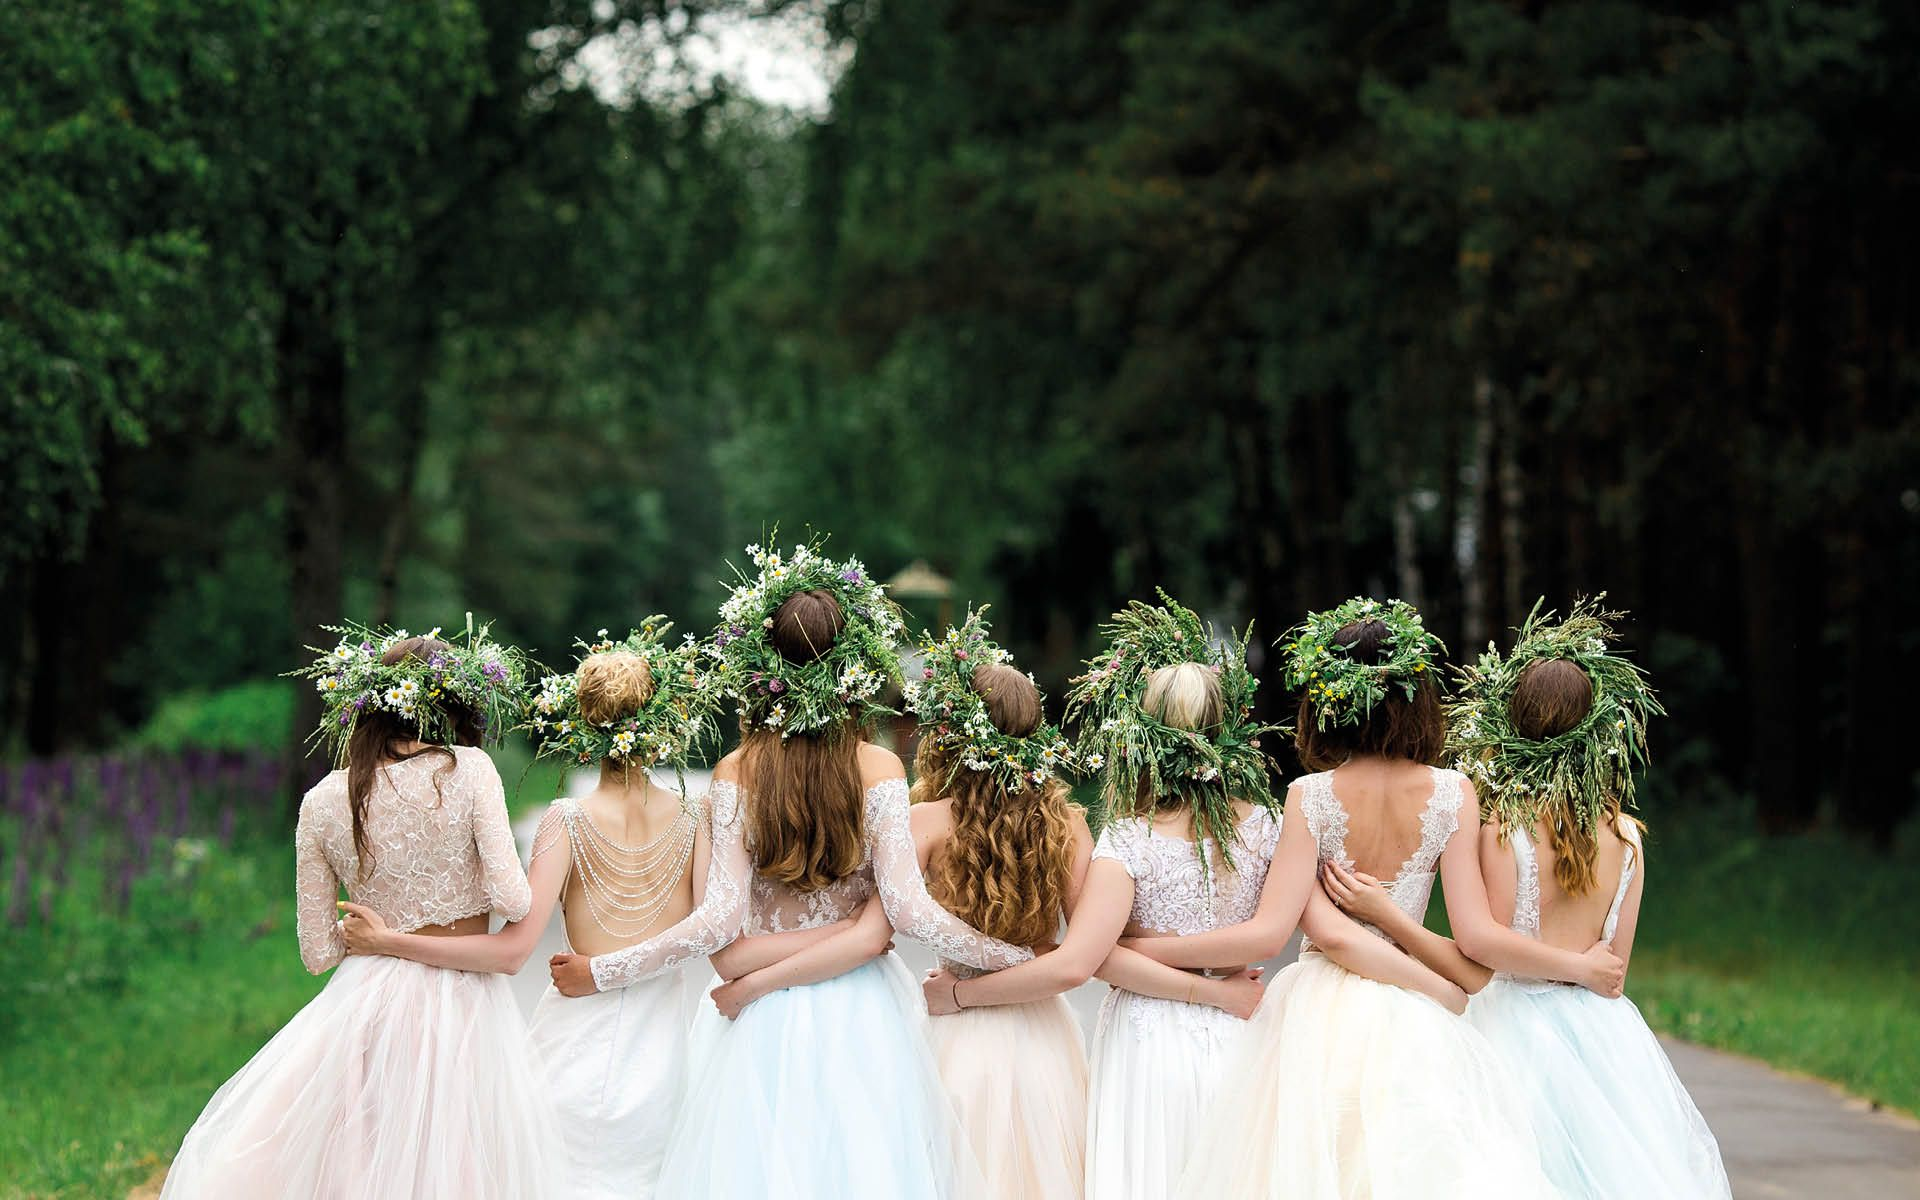 10 Bridesmaid Gift Ideas To Spoil Your Squad